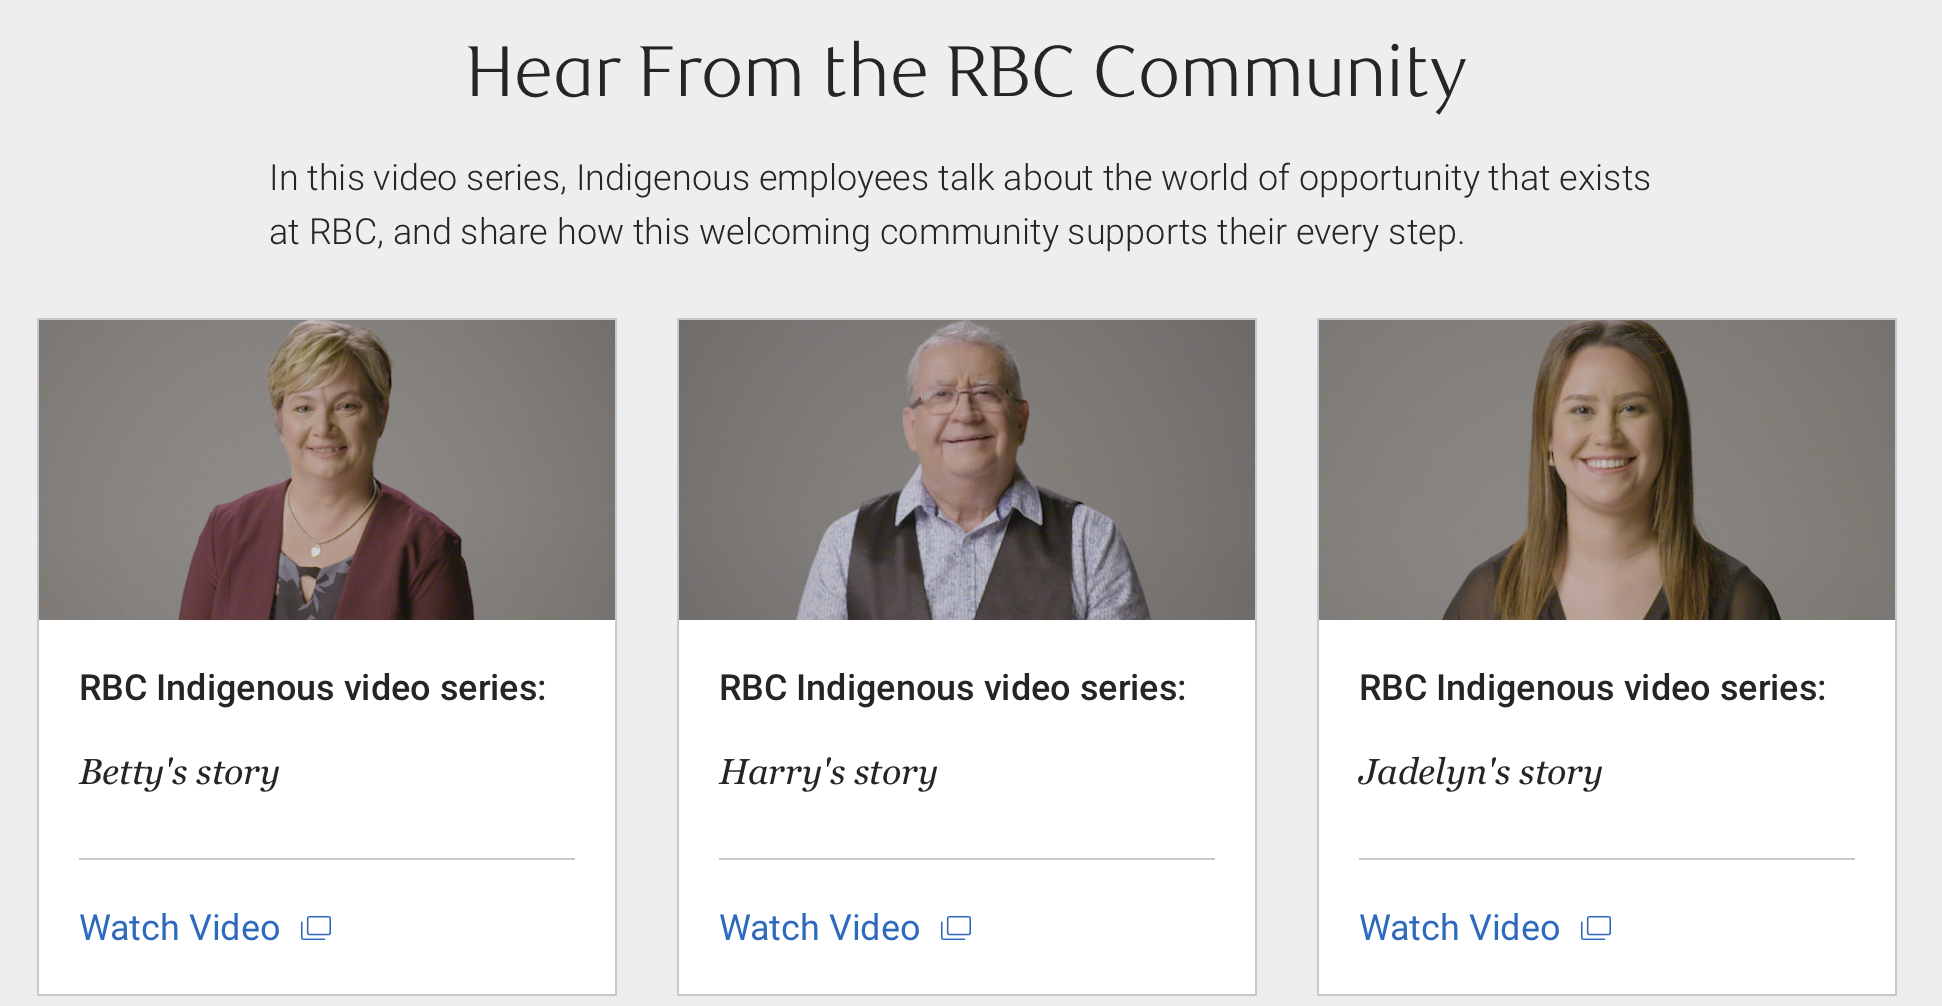 Course Integrates with RBC Indigenous Video Series